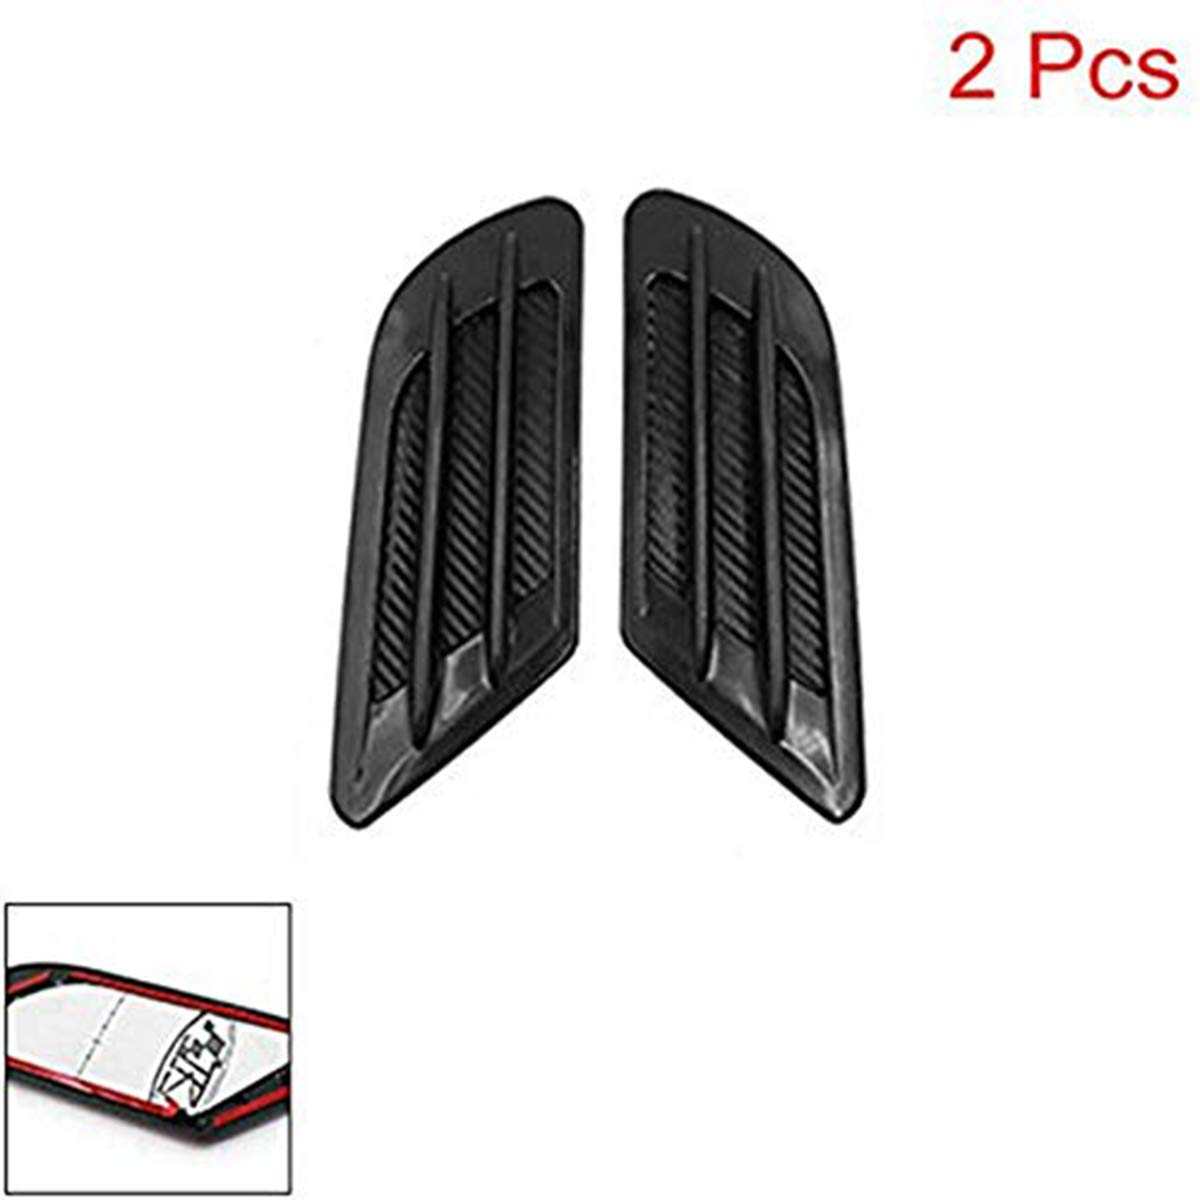 ZYHW Car Air Flow Sticker Carbon Fiber Print Adhesive Side Vent Fender Intake Decor Black 2Pcs